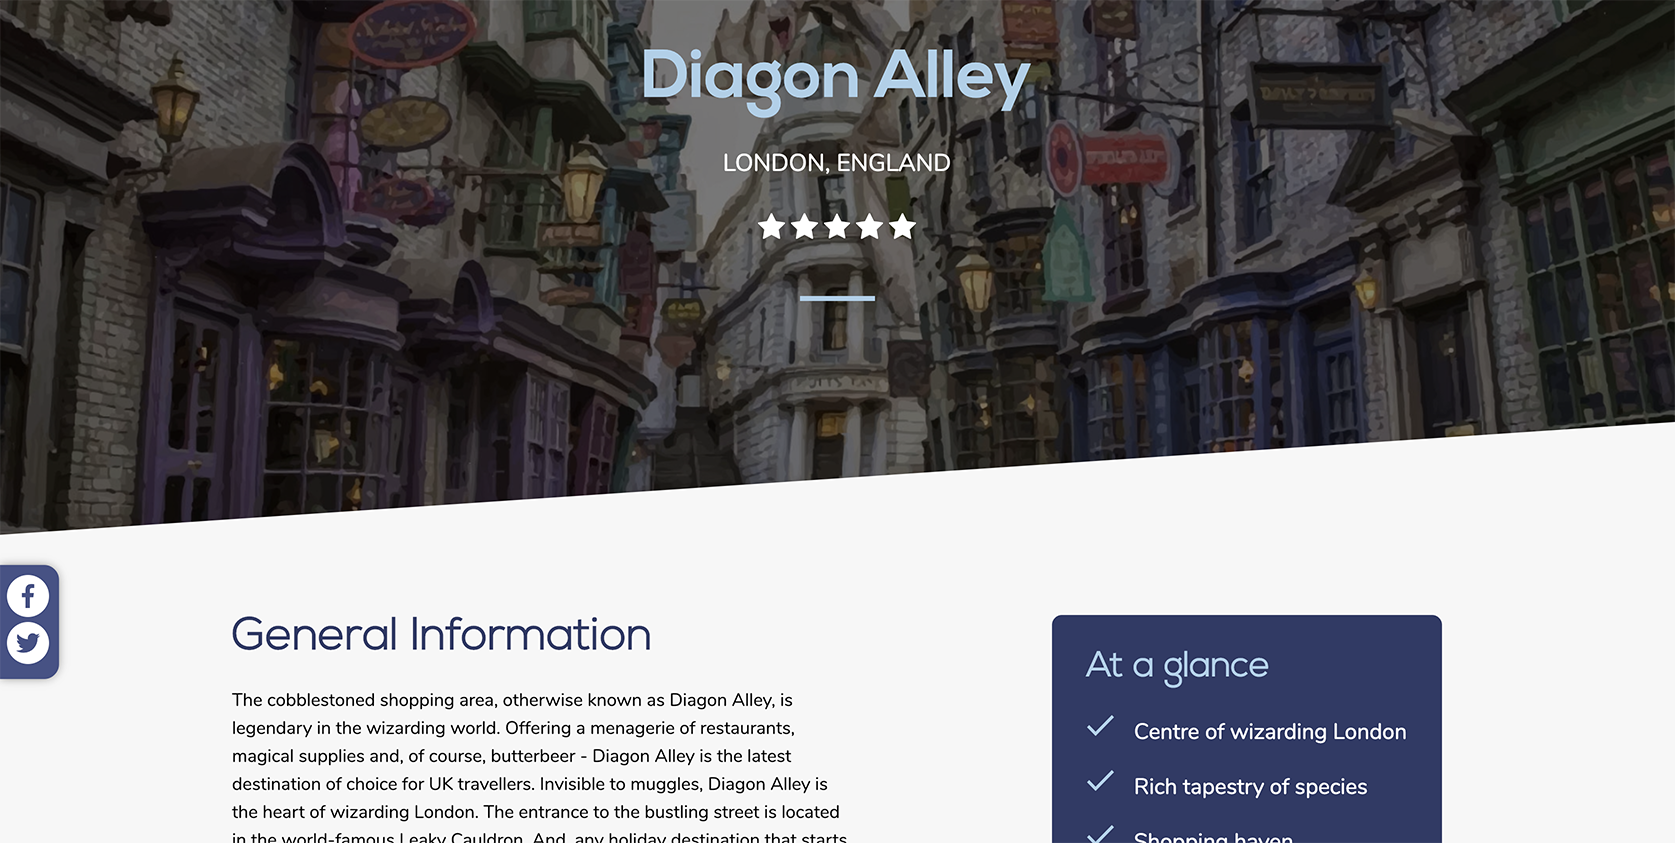 Diagon Alley Page.png